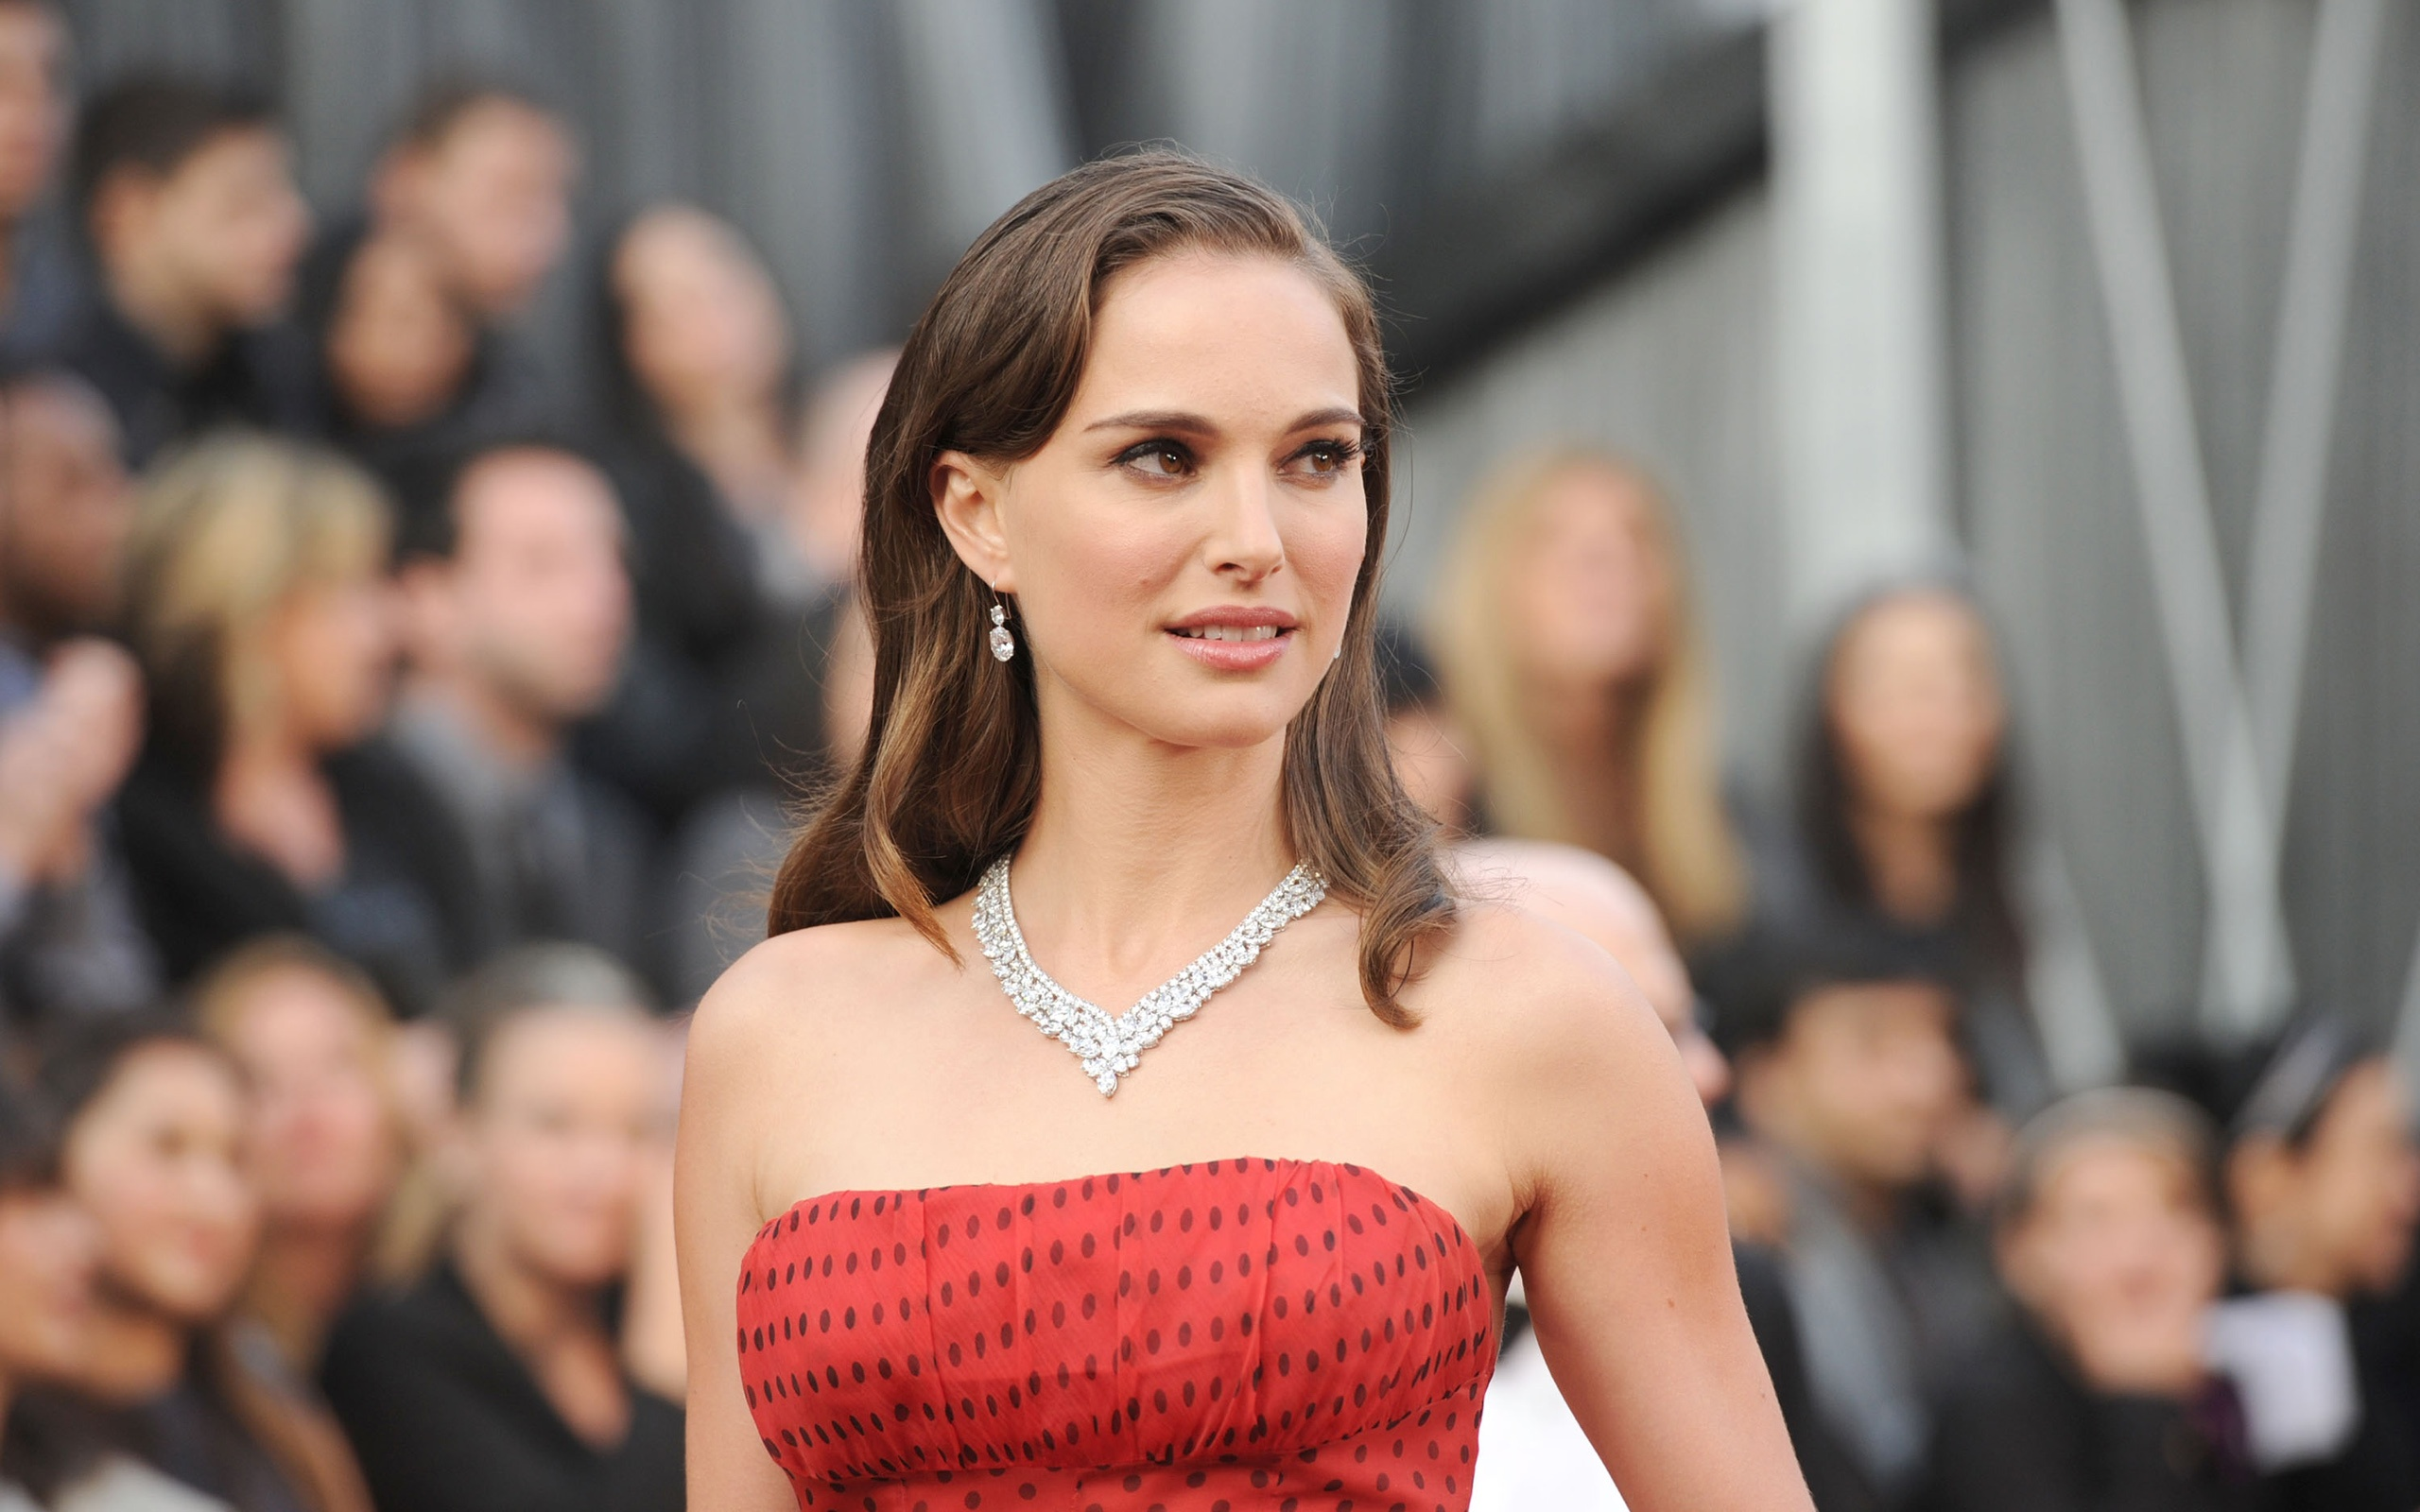 Natalie Portman at the premiere of Thor